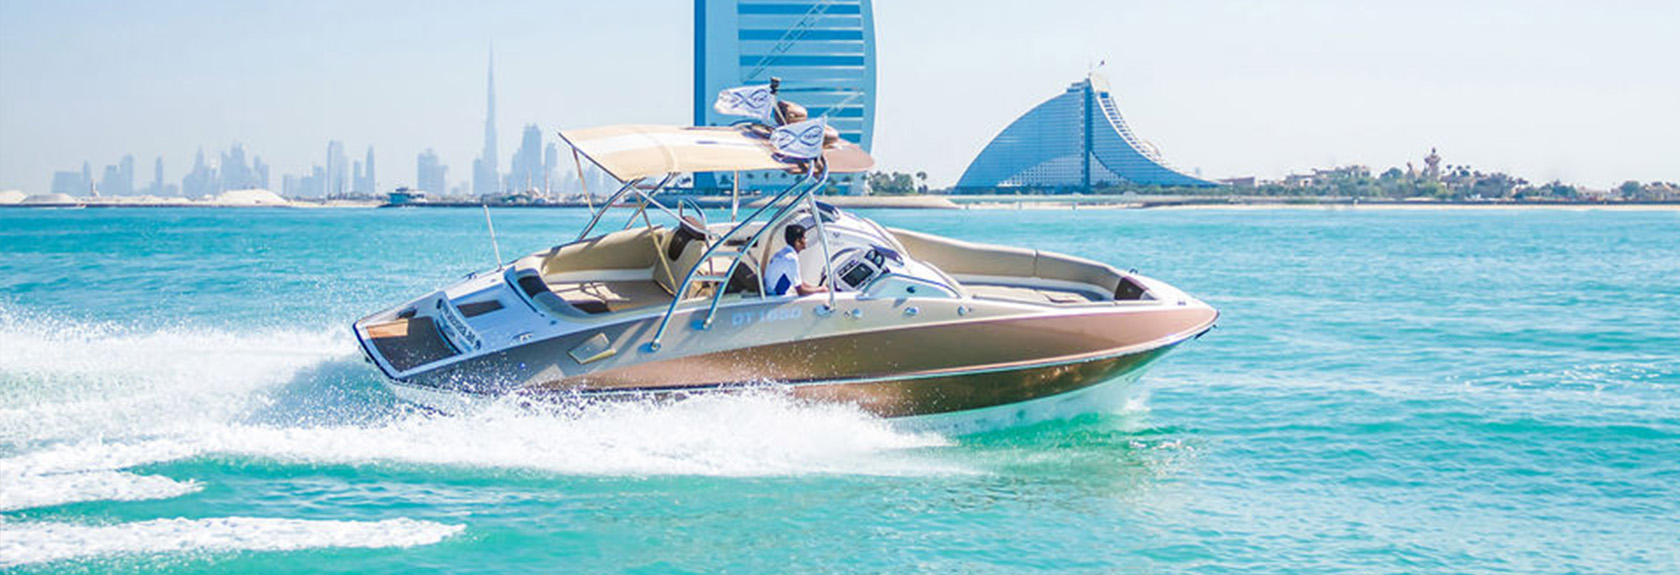 Private Boat Tour Dubai Marina & Palm Jumeirah